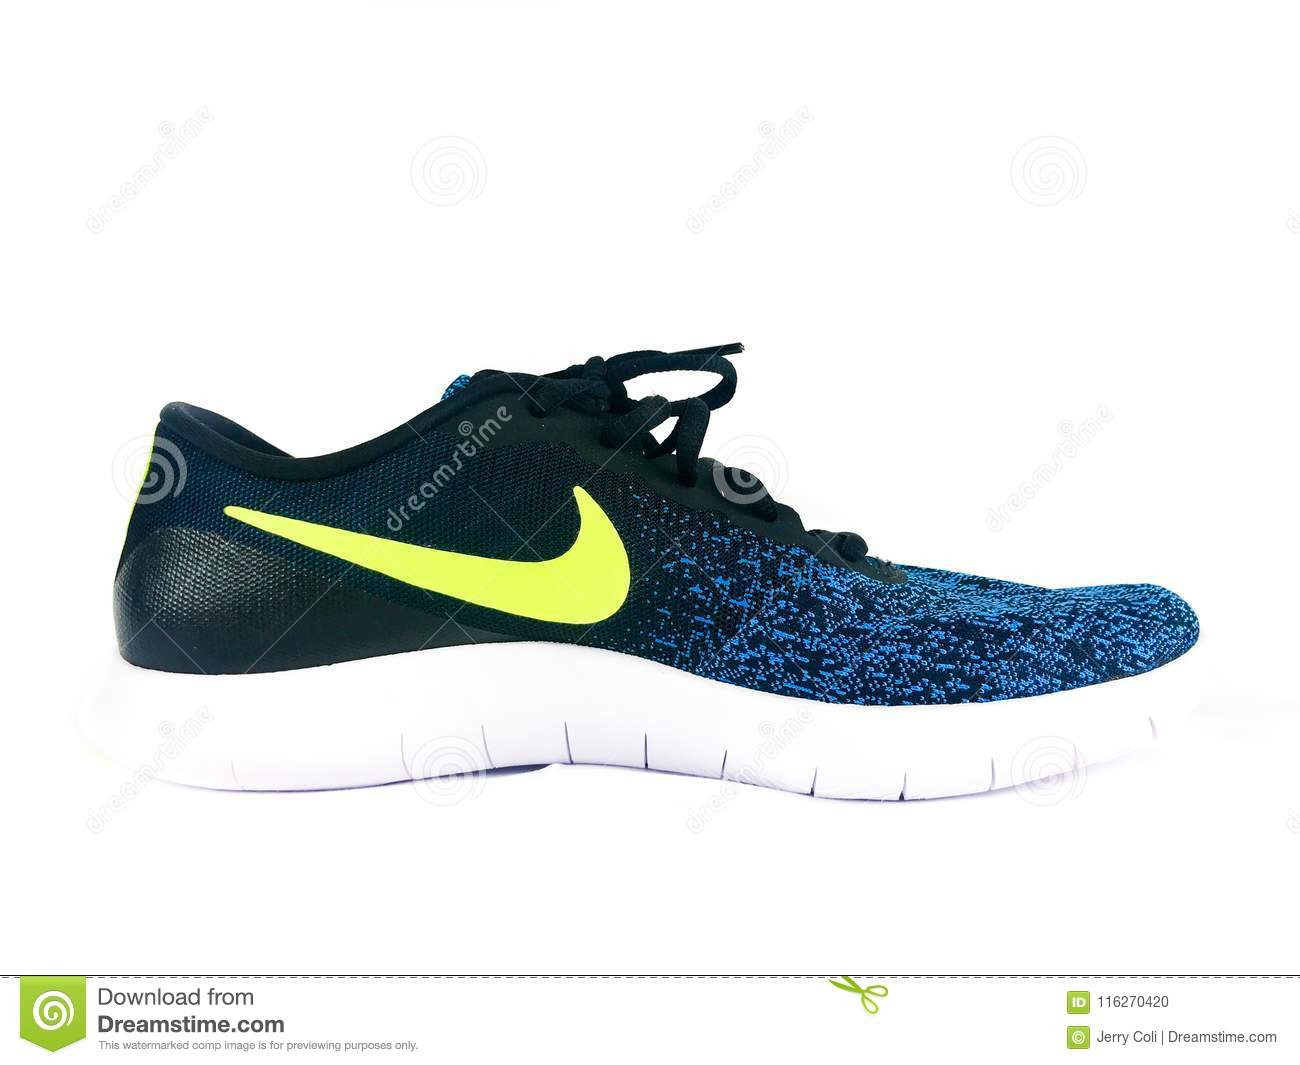 innovative design fe1bc 1c920 nike-sneakers-sale-shoe-store-nike-sneakers-sale-shoe-store-white -backdrop-116270420.jpg